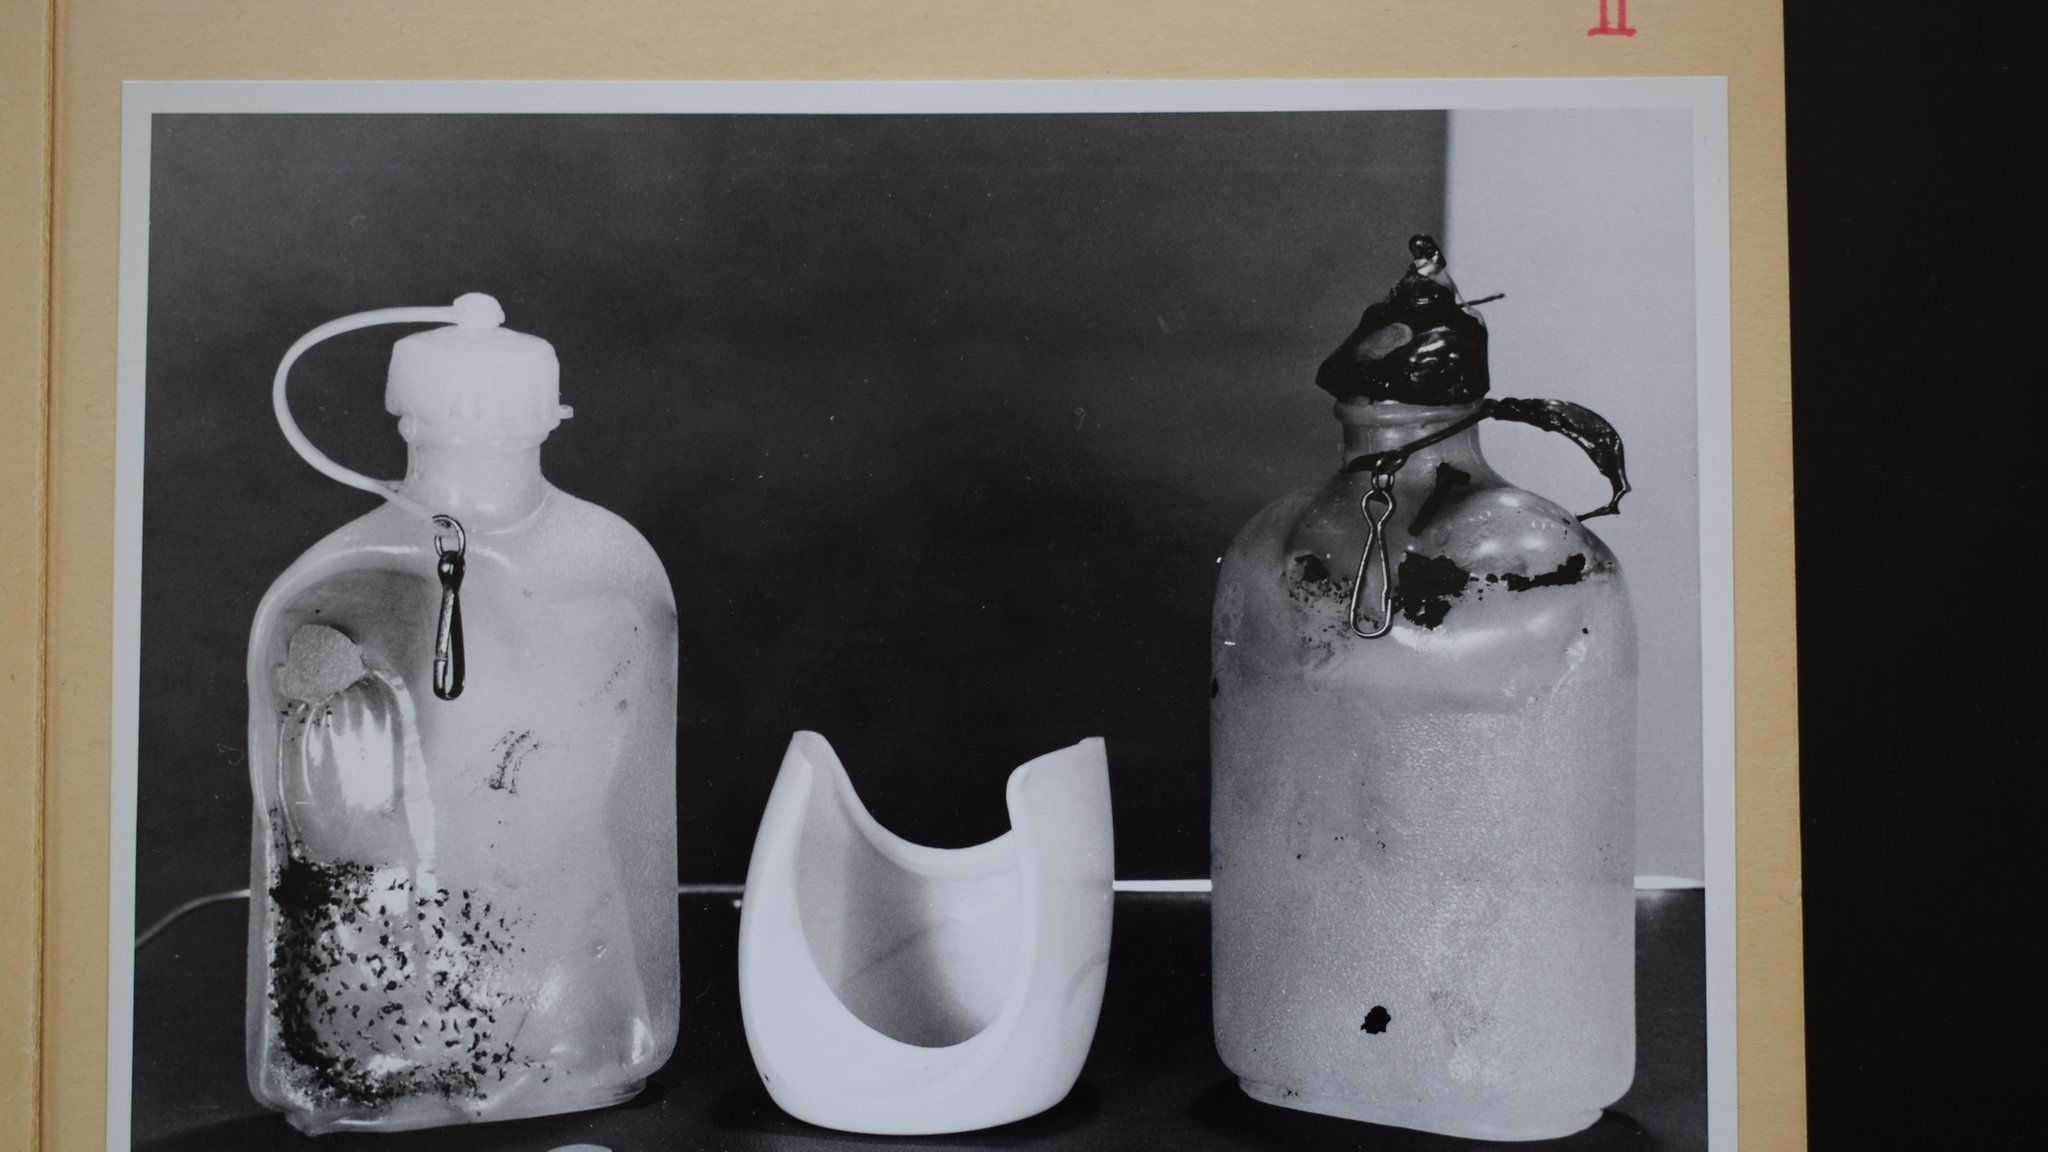 Police photo from Bergen State Archives showing two bottles found near the body of the woman